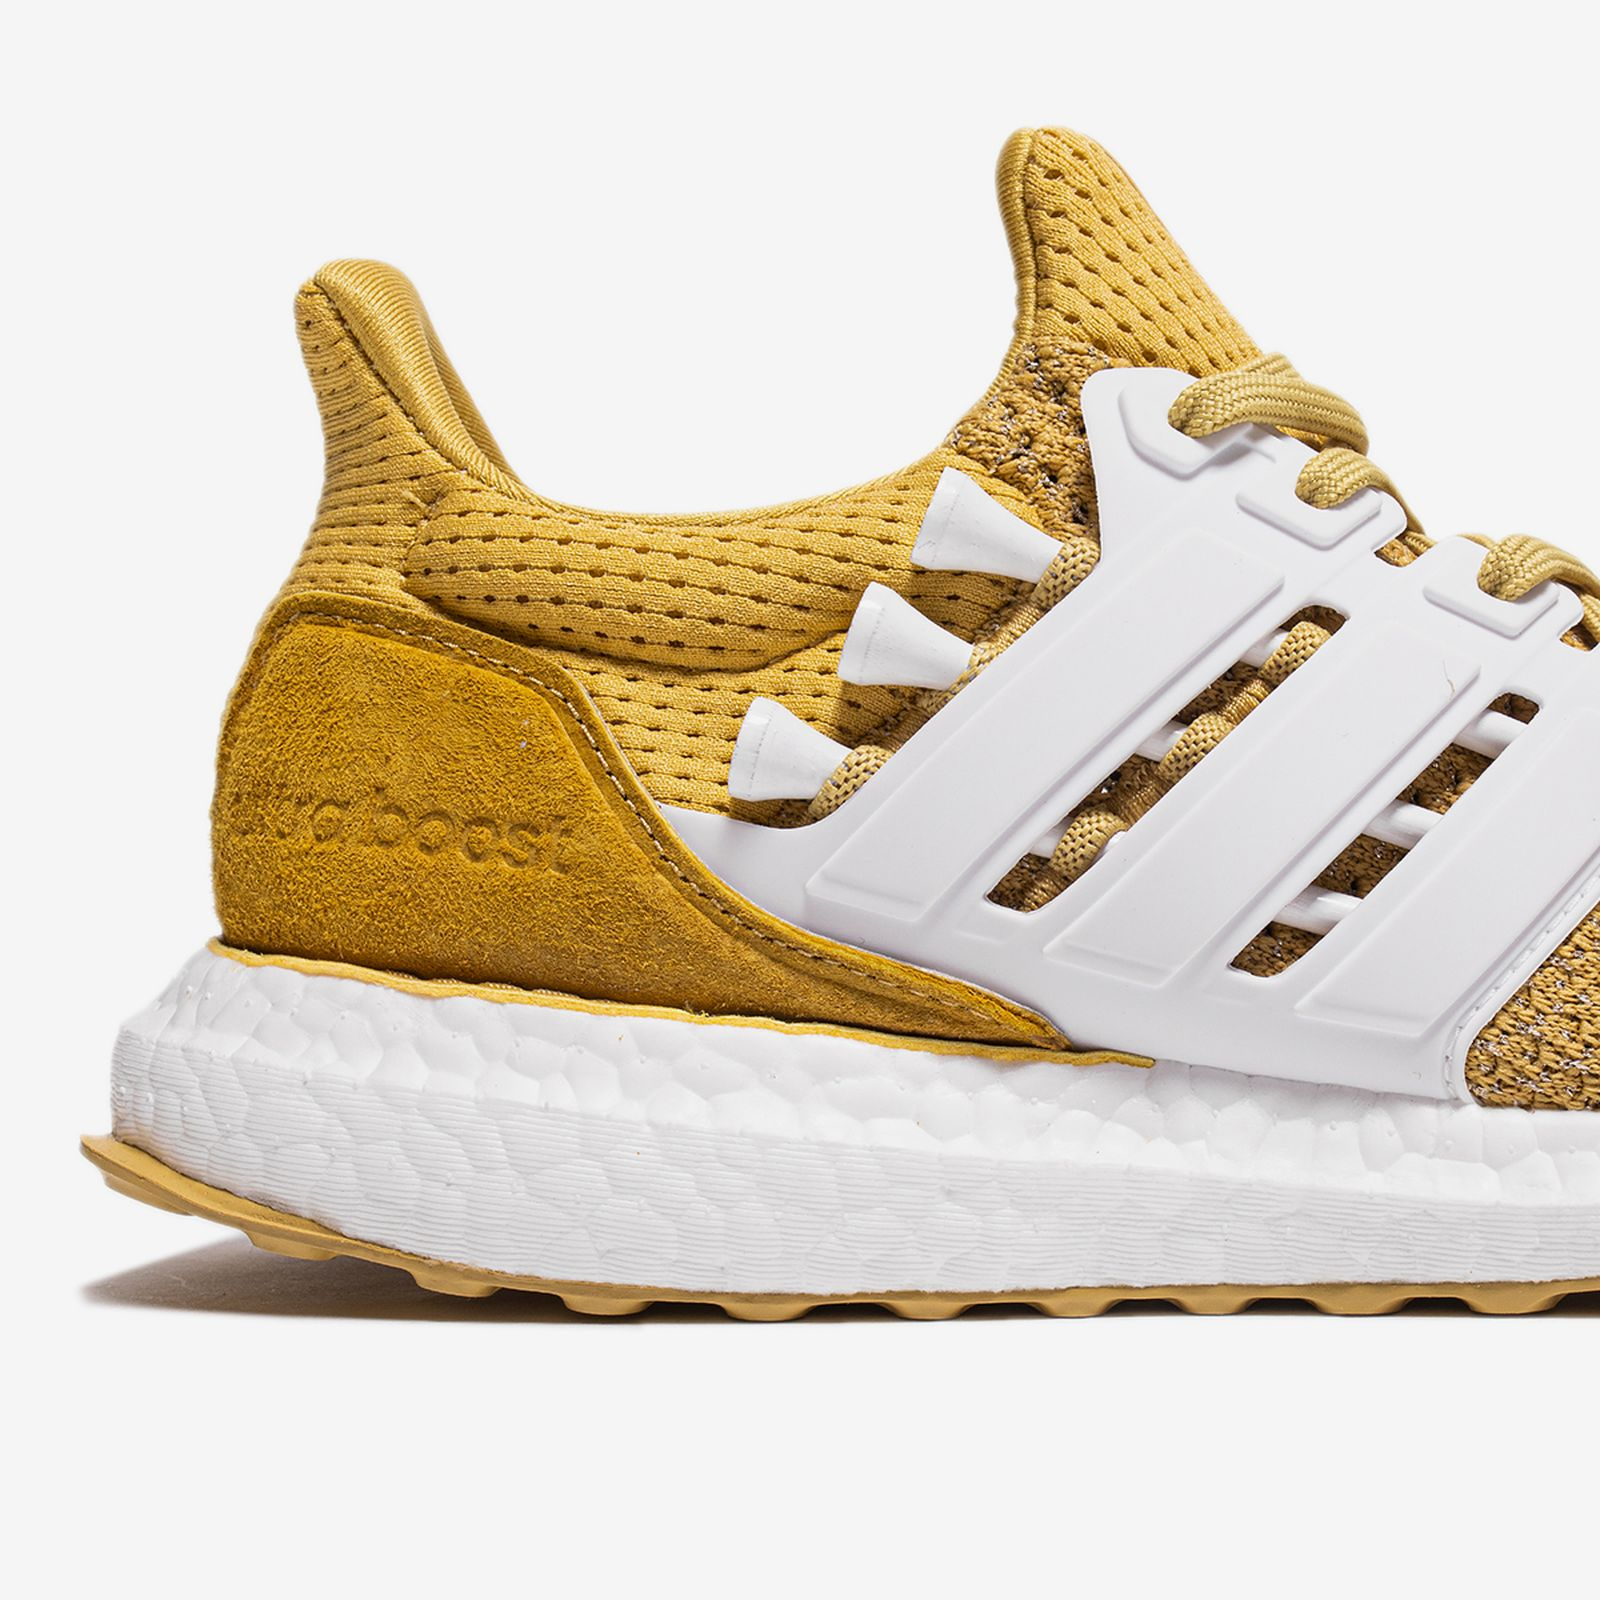 extra-butter-adidas-ultraboost-gold-jacket-release-date-price-1-07